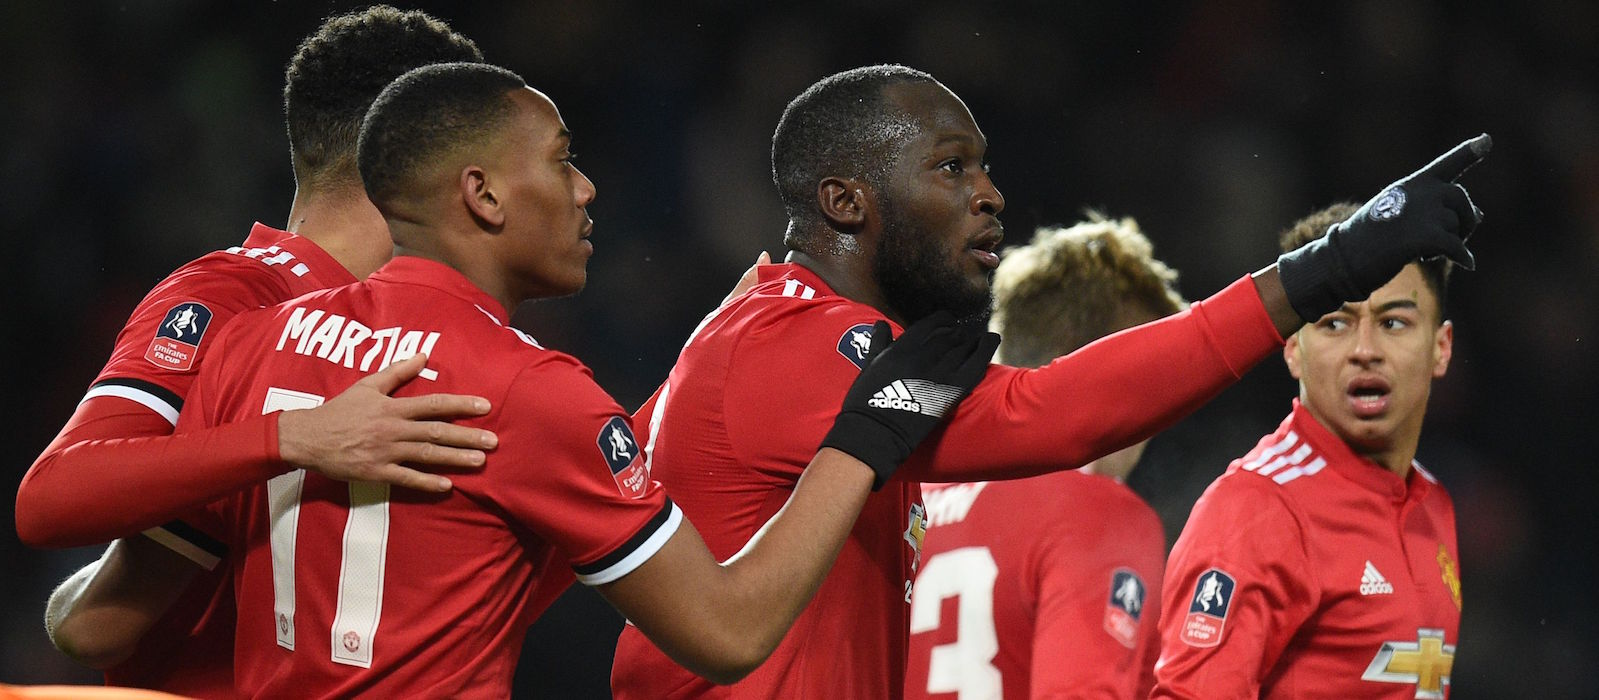 Romelu Lukaku's sensational form continues with milestone display against Swansea City